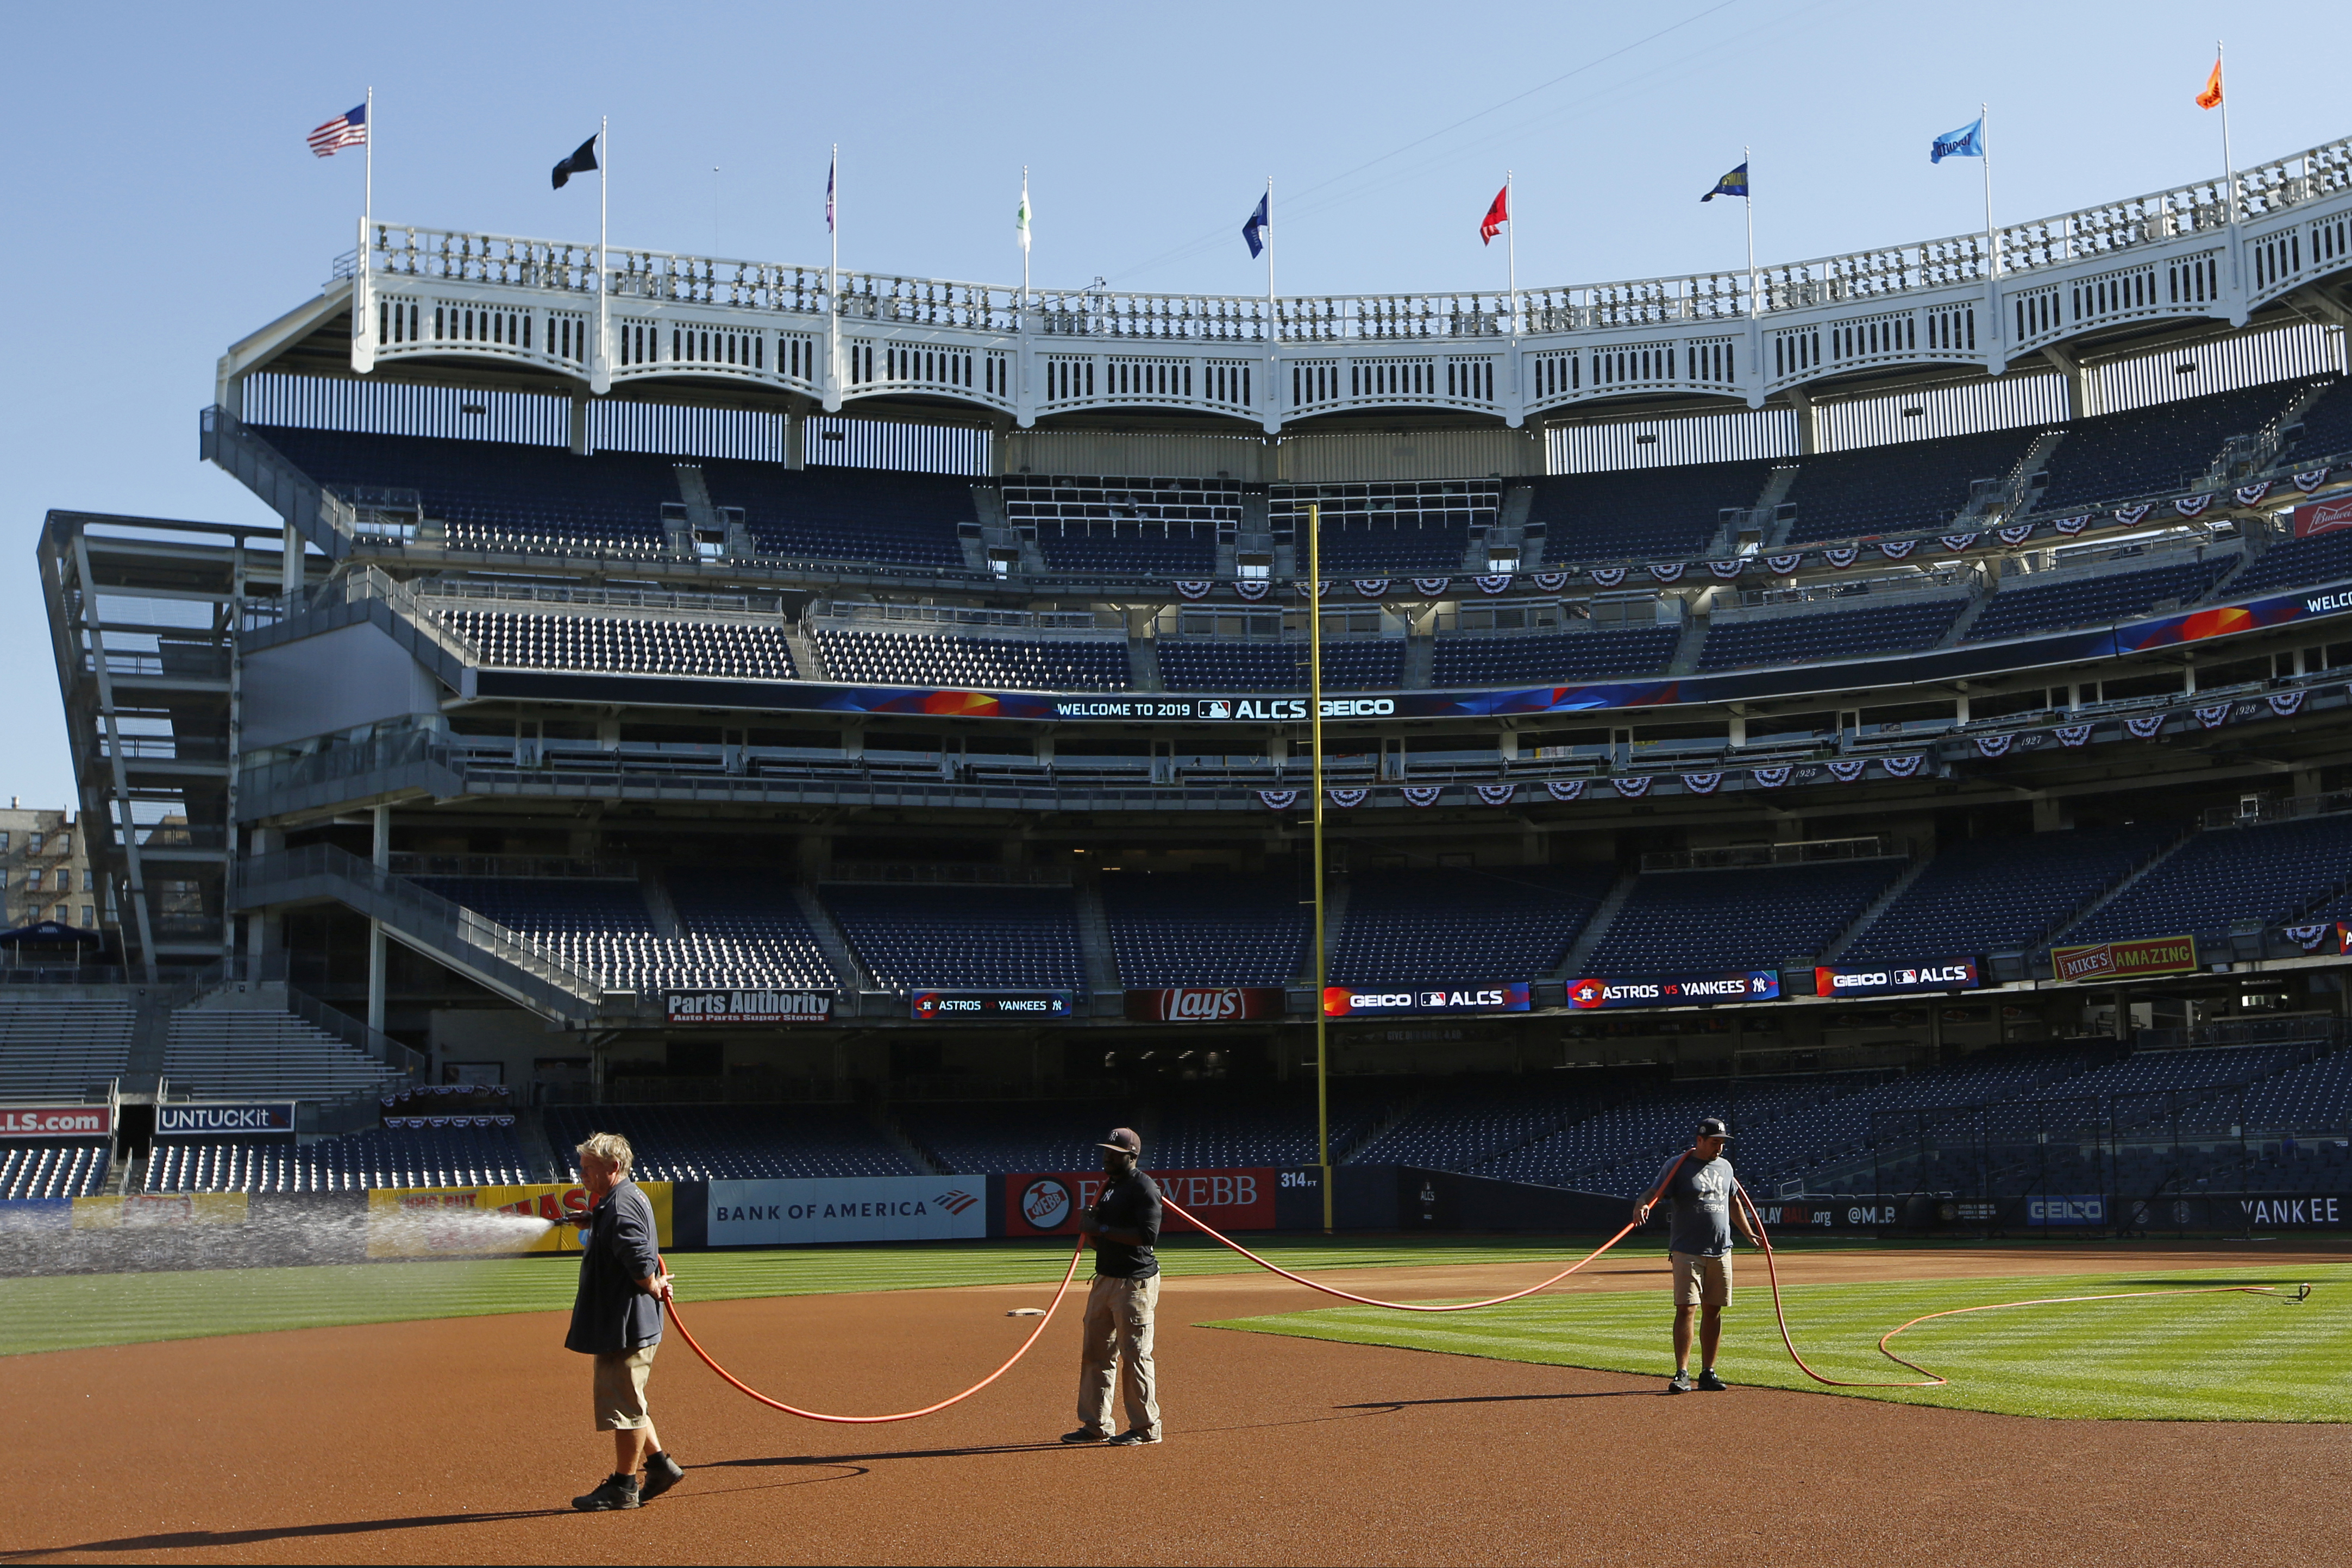 Groundskeepers water the field at Yankee Stadium, Monday, Oct. 14, 2019, in New York, in perparation for Game 3 in the American League Championship Series between the New York Yankees and the Houston Astros. (AP Photo/Kathy Willens) ORG XMIT: OTKKW104